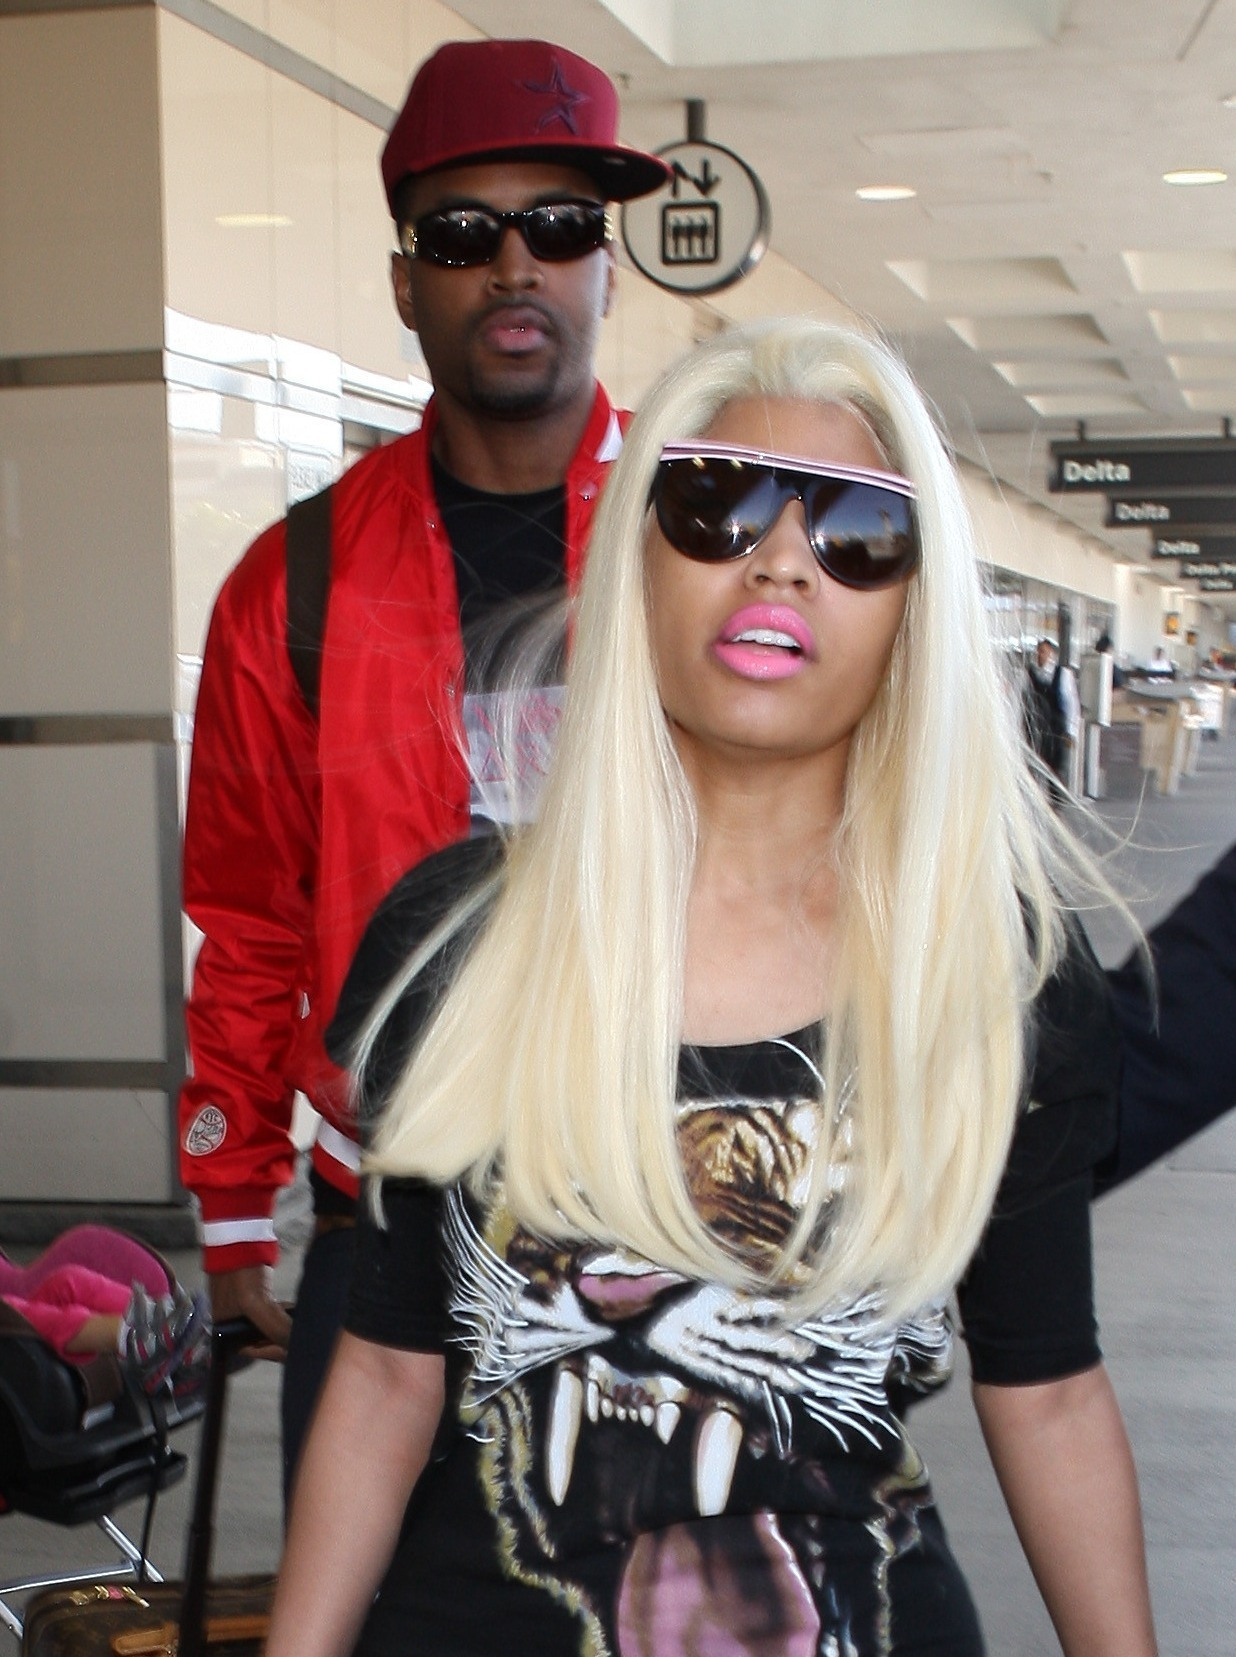 NICKI MINAJ SNAPPED AT LAX Hot Shots: Nicki Minaj Gets Shady In LAX